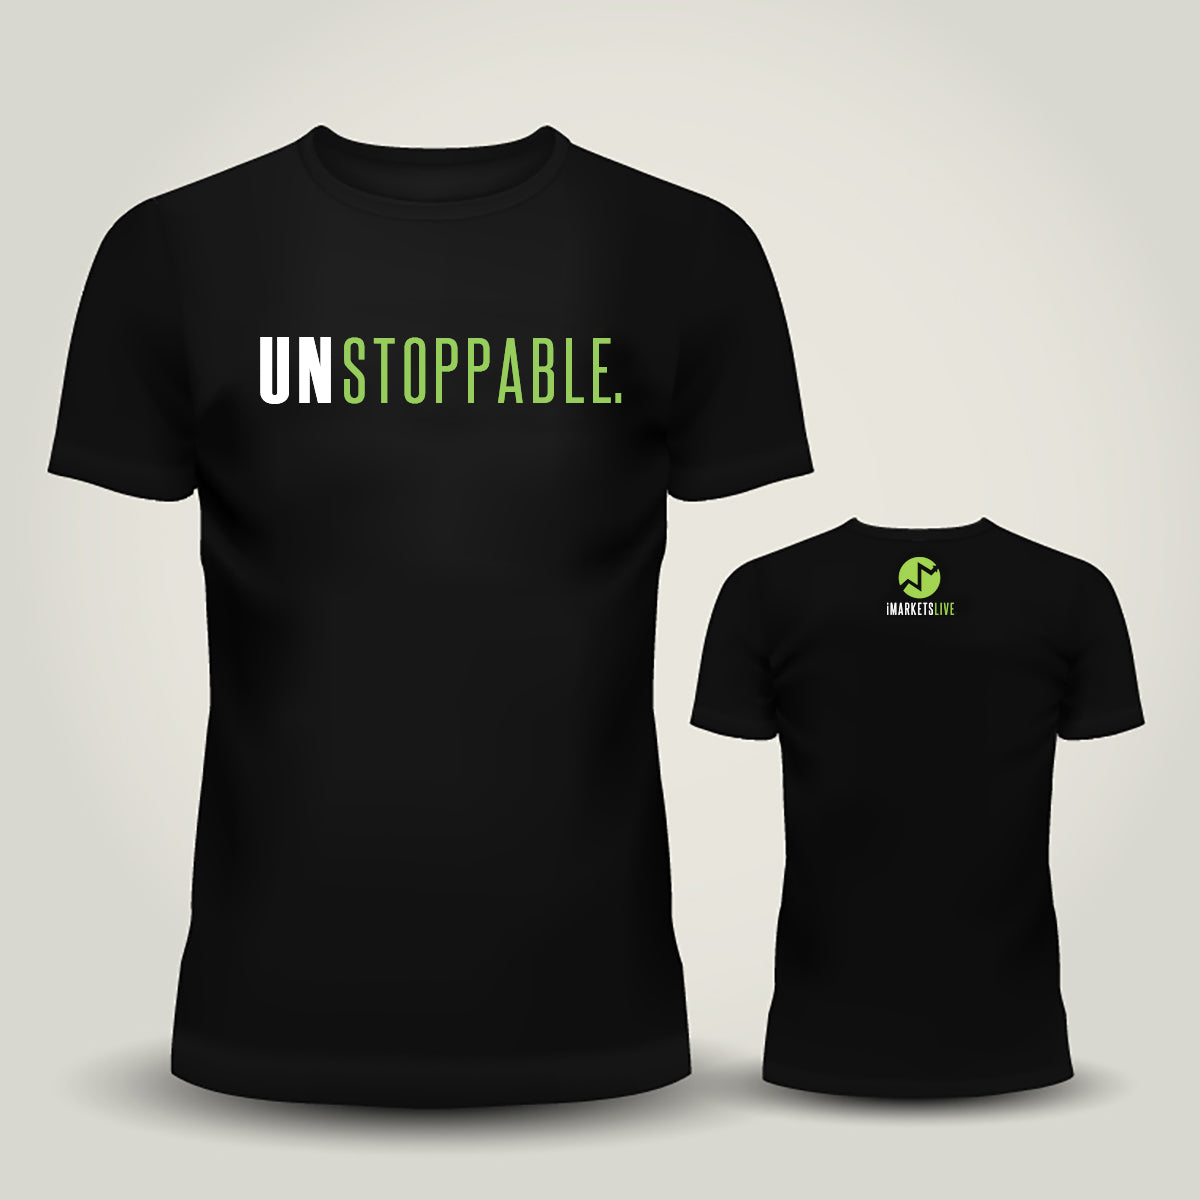 IML Gear - Men's Black Classic Tee - UNSTOPPABLE